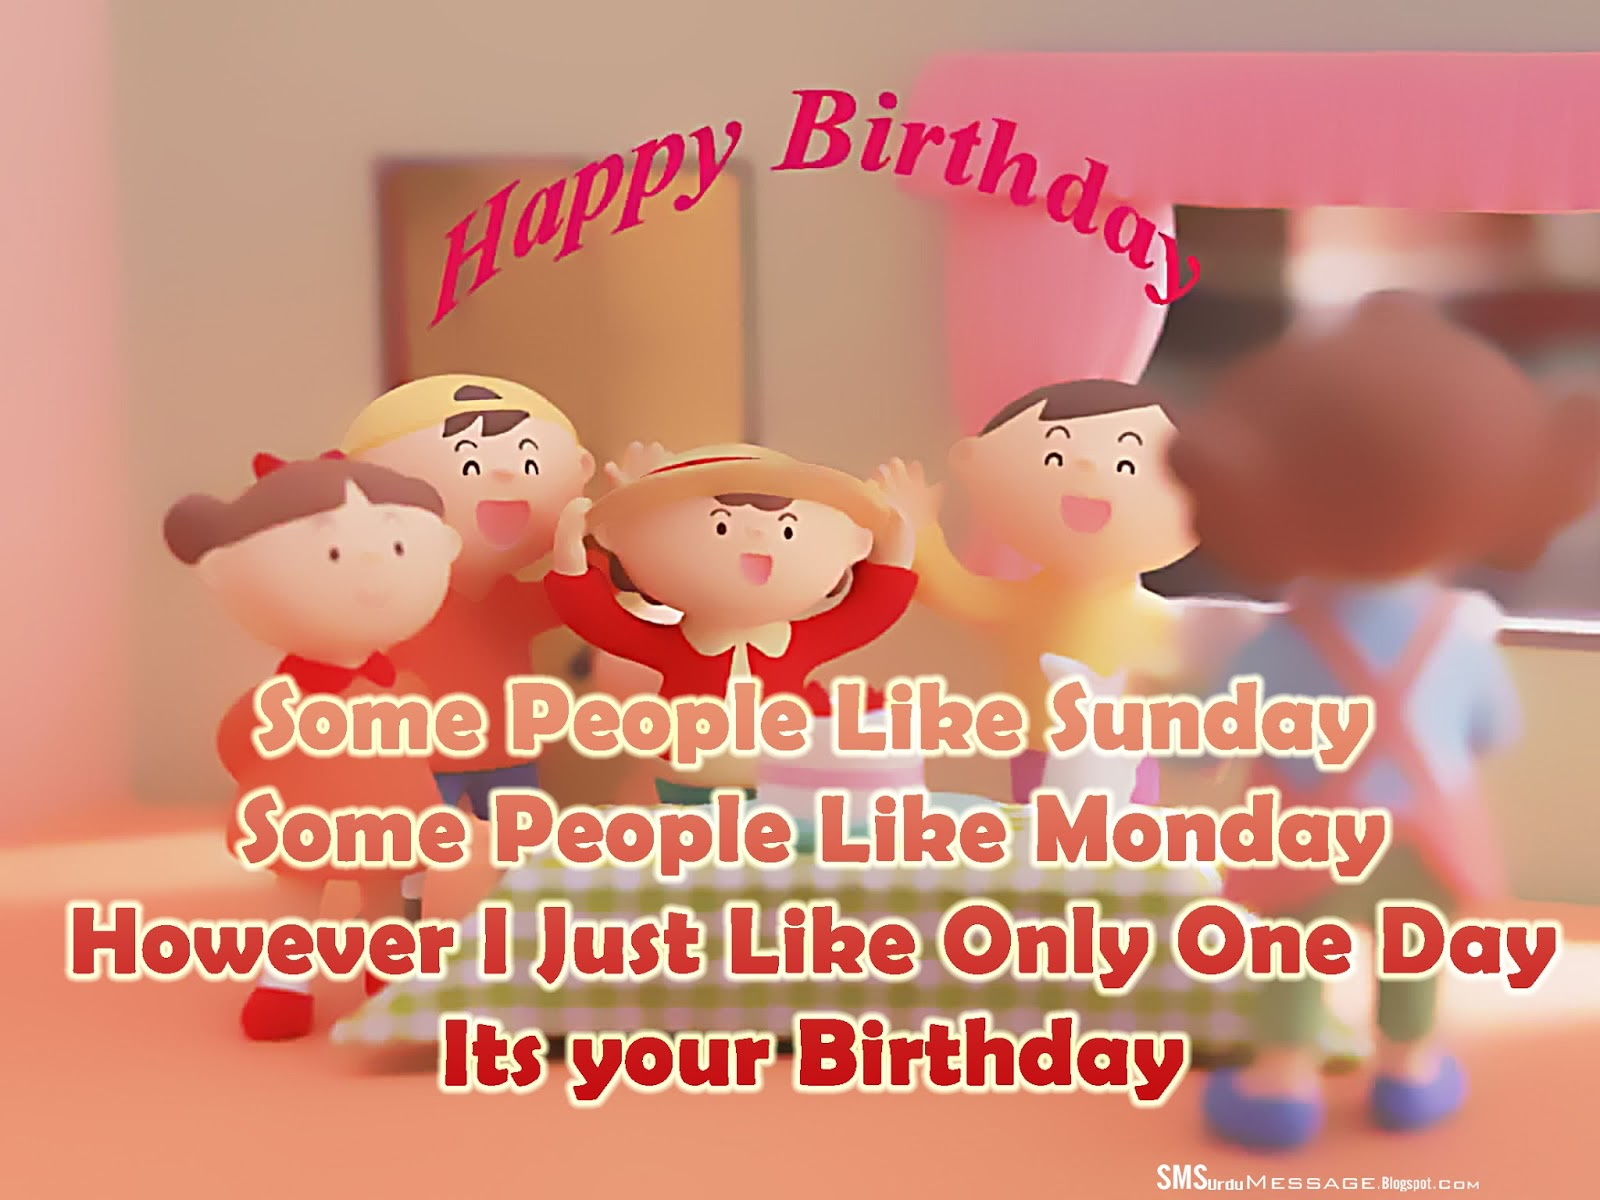 SMS Happy Brithday With Advance Happy Birthday SMS – Birthday Card Message for Best Friend